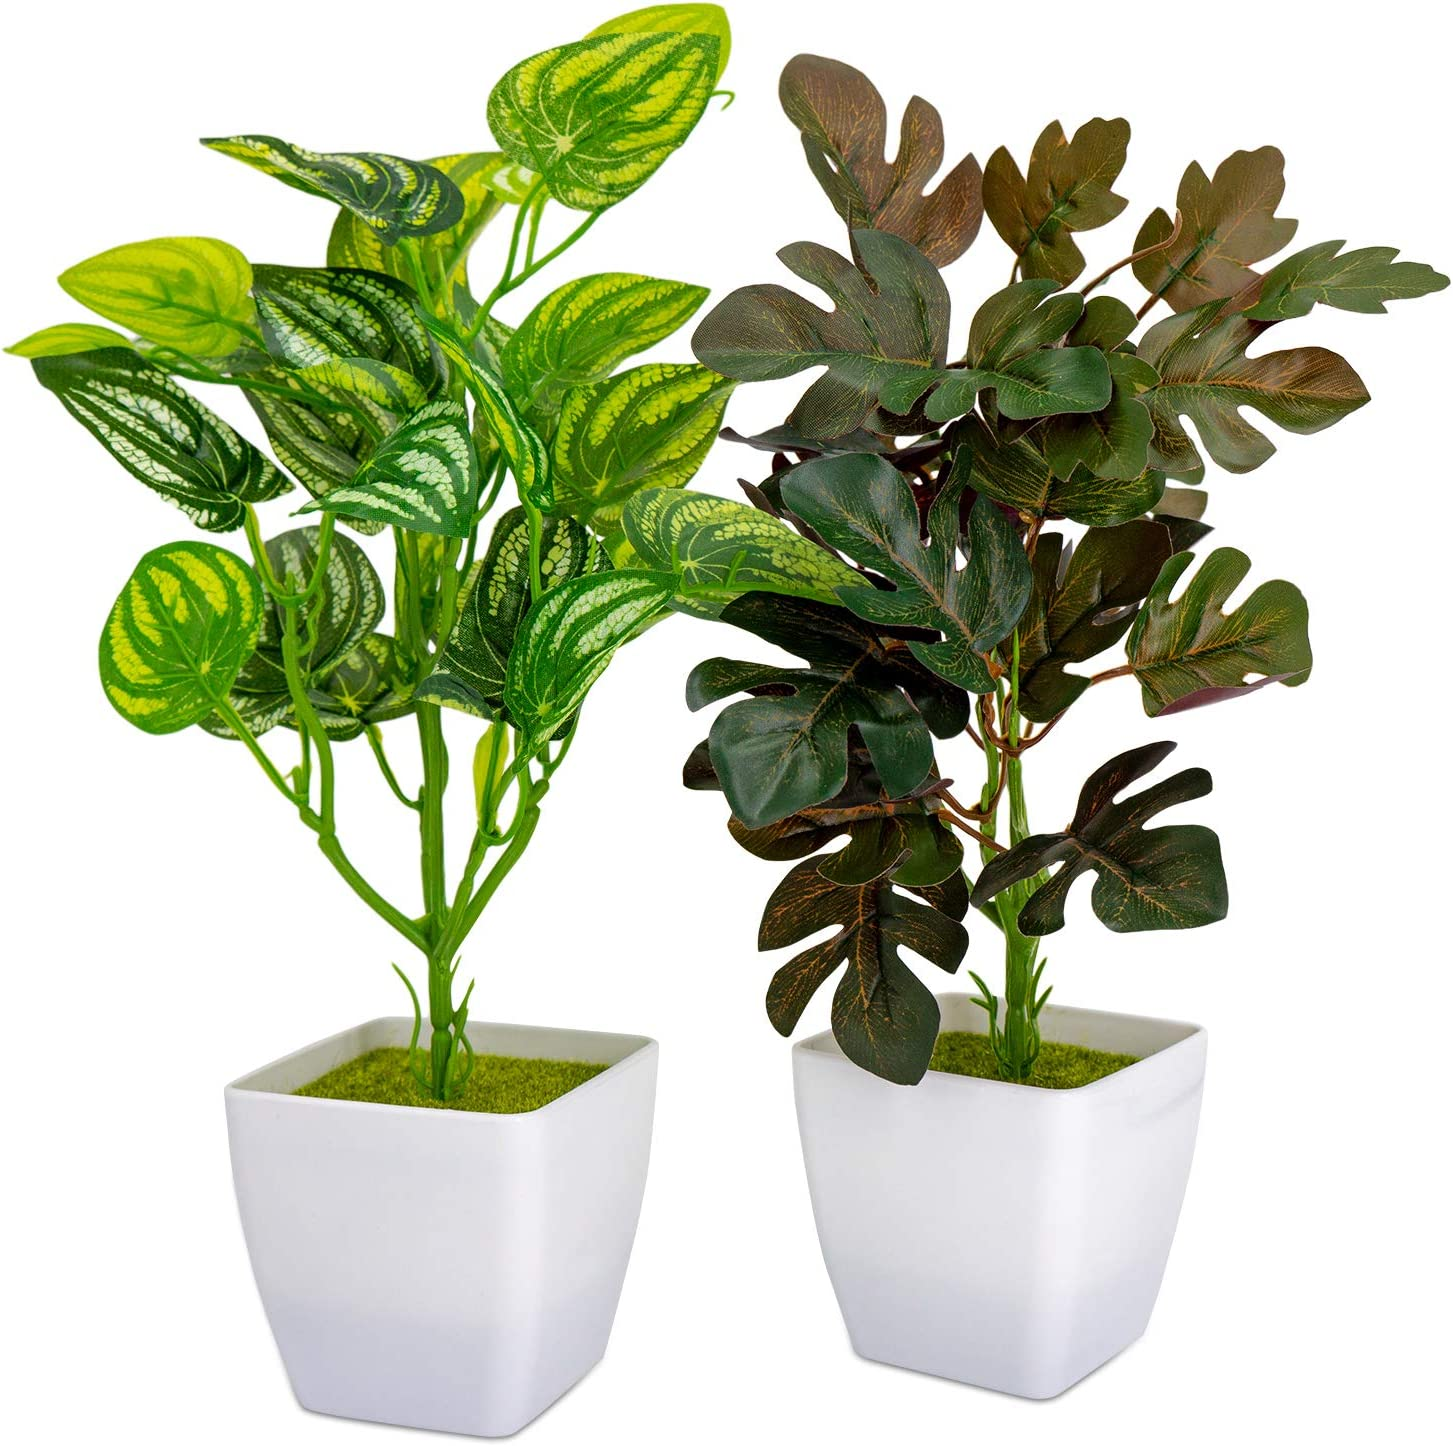 Huryfox 2 Pack Artificial Plants in Pots for Home Decor Indoor Aesthetic, Fall Décor Faux Green Leaves Fake Plant for Desk and Shelf in Bathroom/Bedroom/Living Room/Farmhouse/Christmas Decorations